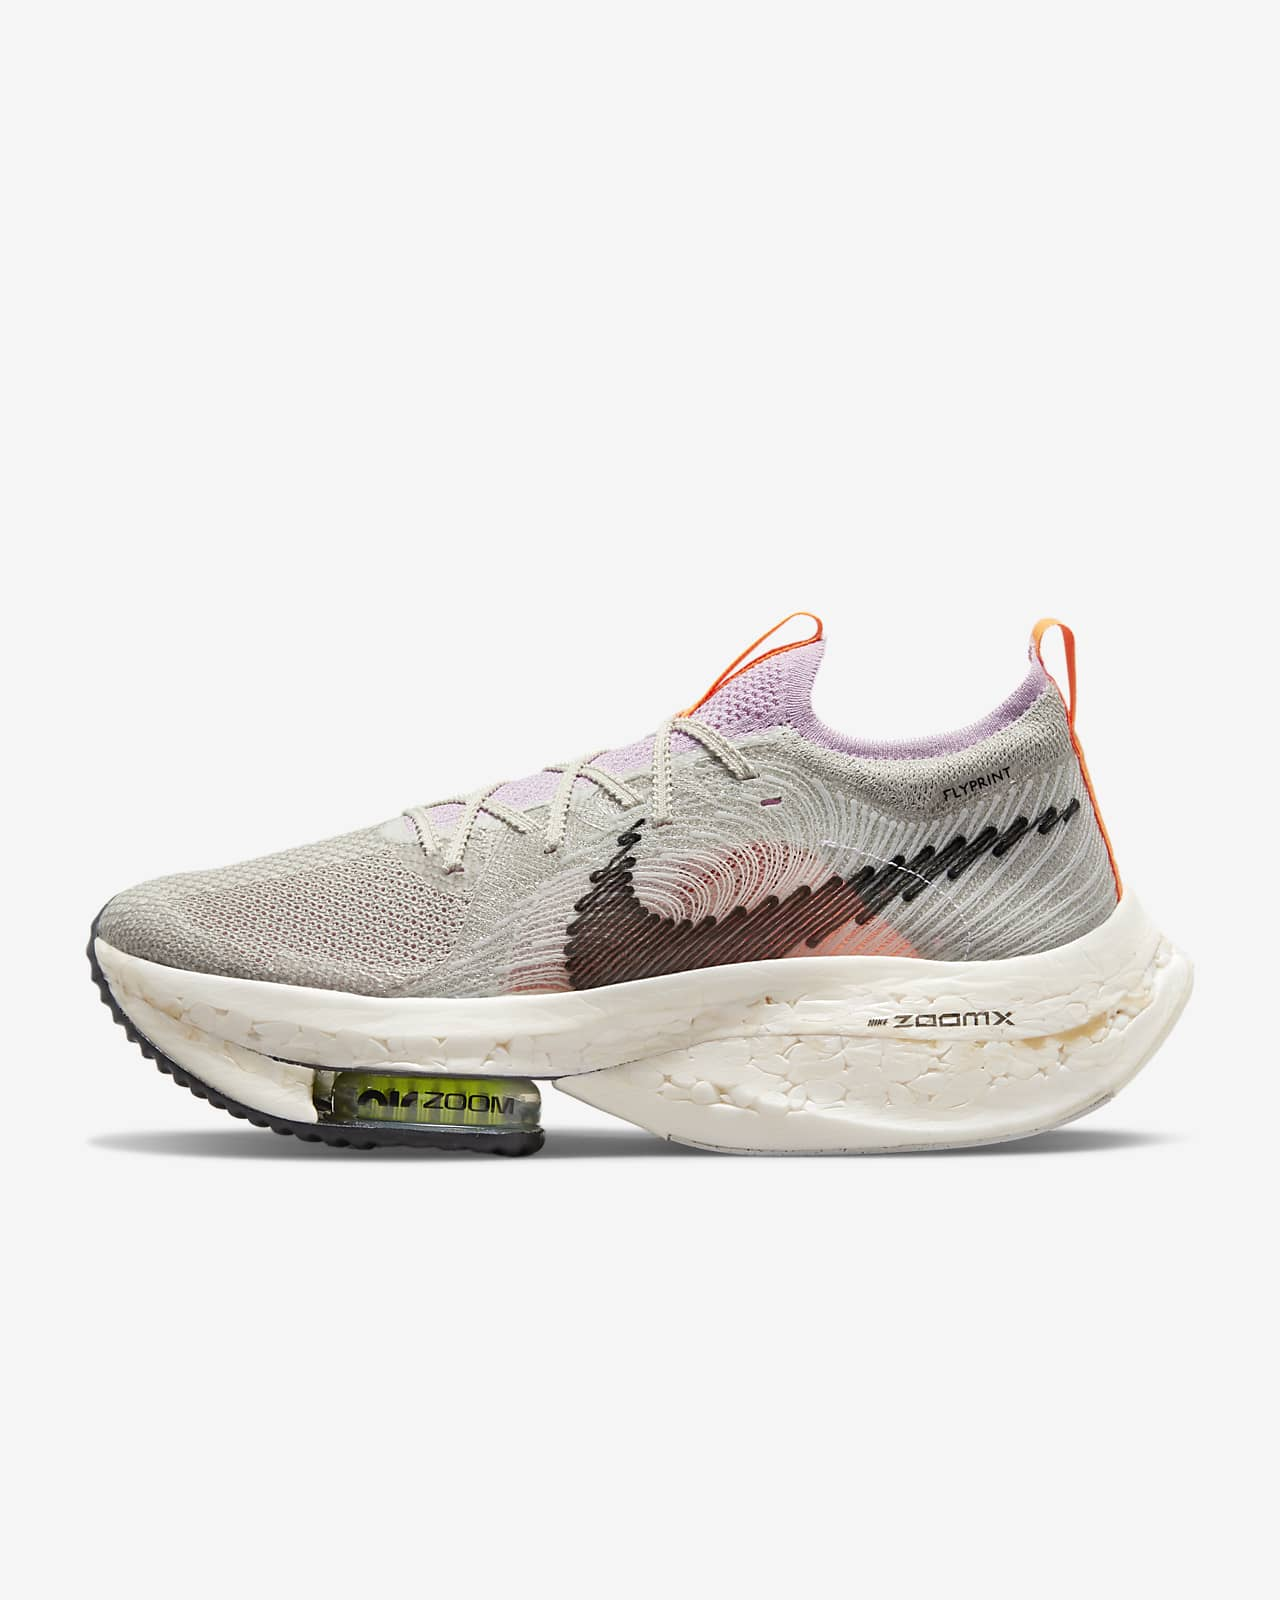 Nike Zoom Alphafly Next Nature Road Racing Shoe